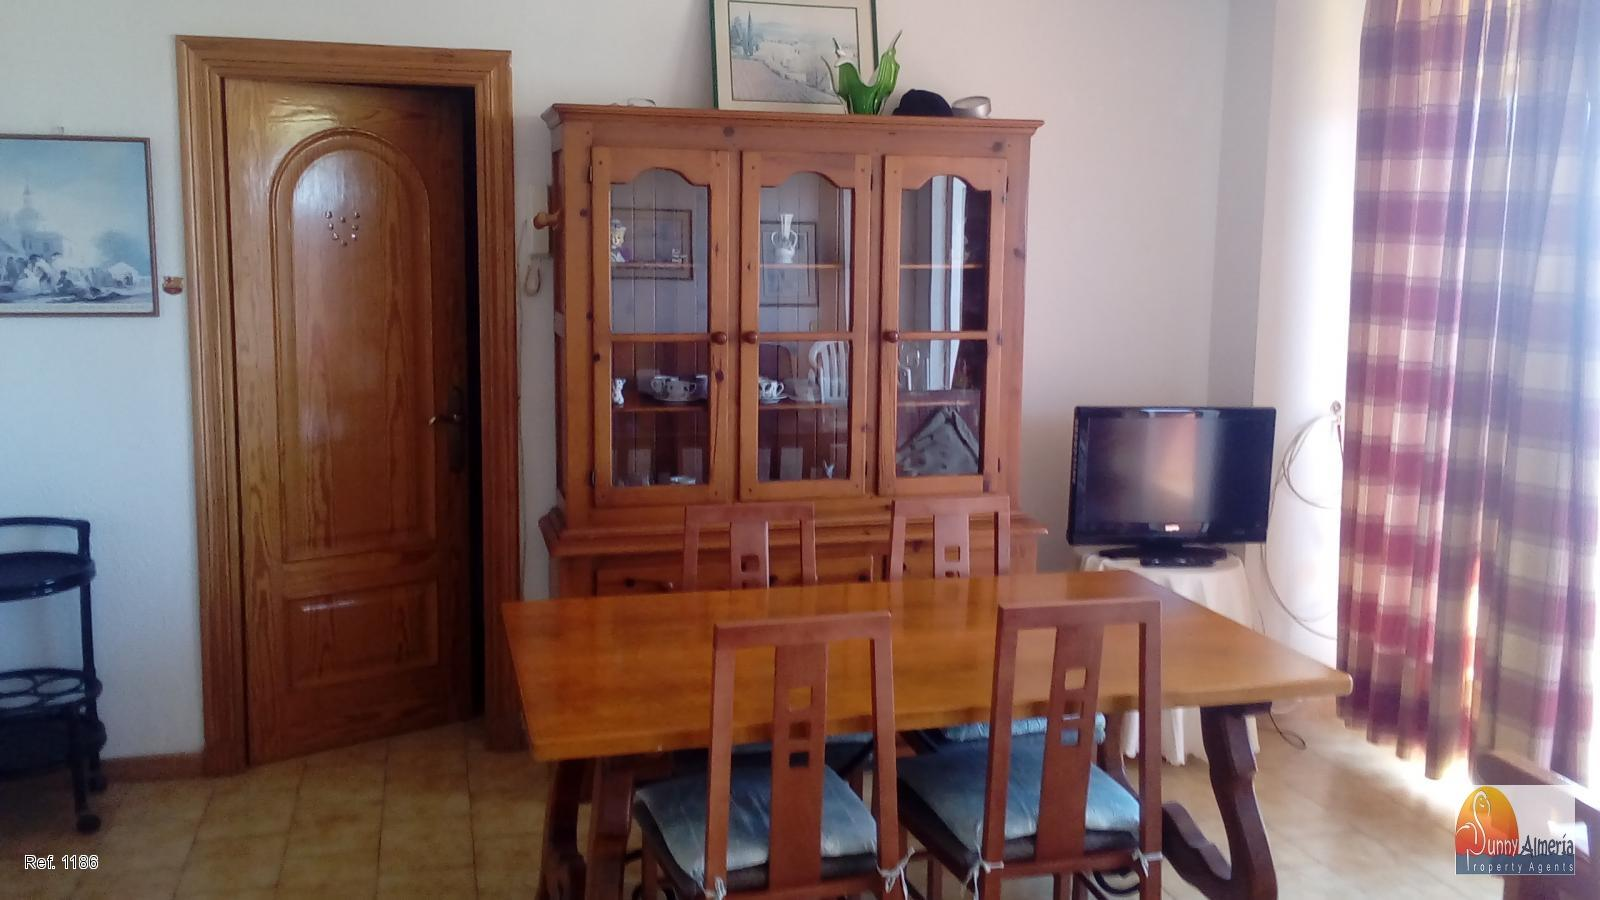 Apartment for sale in C/ LAGO GARZA 7 (Roquetas de Mar), 65.000 €